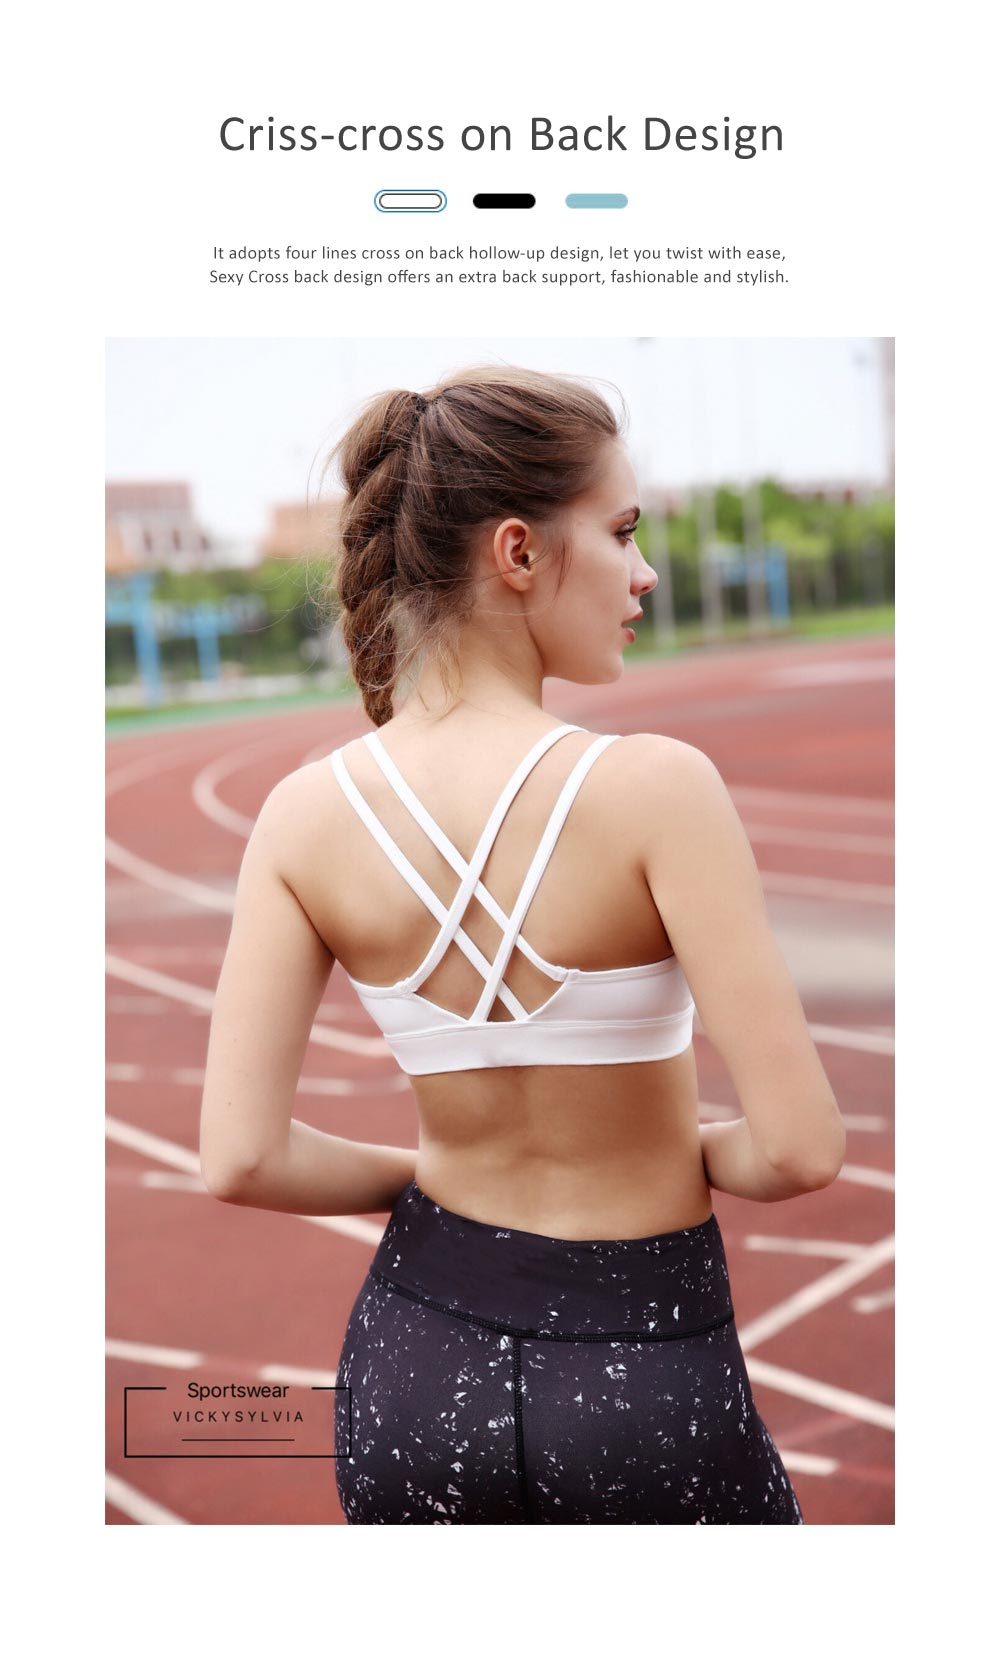 Comfortable Women Vest Sports Bra, Full Figure Sports Underwear, Women's Build-up Racerback Sport Bras with Removable Padded 2